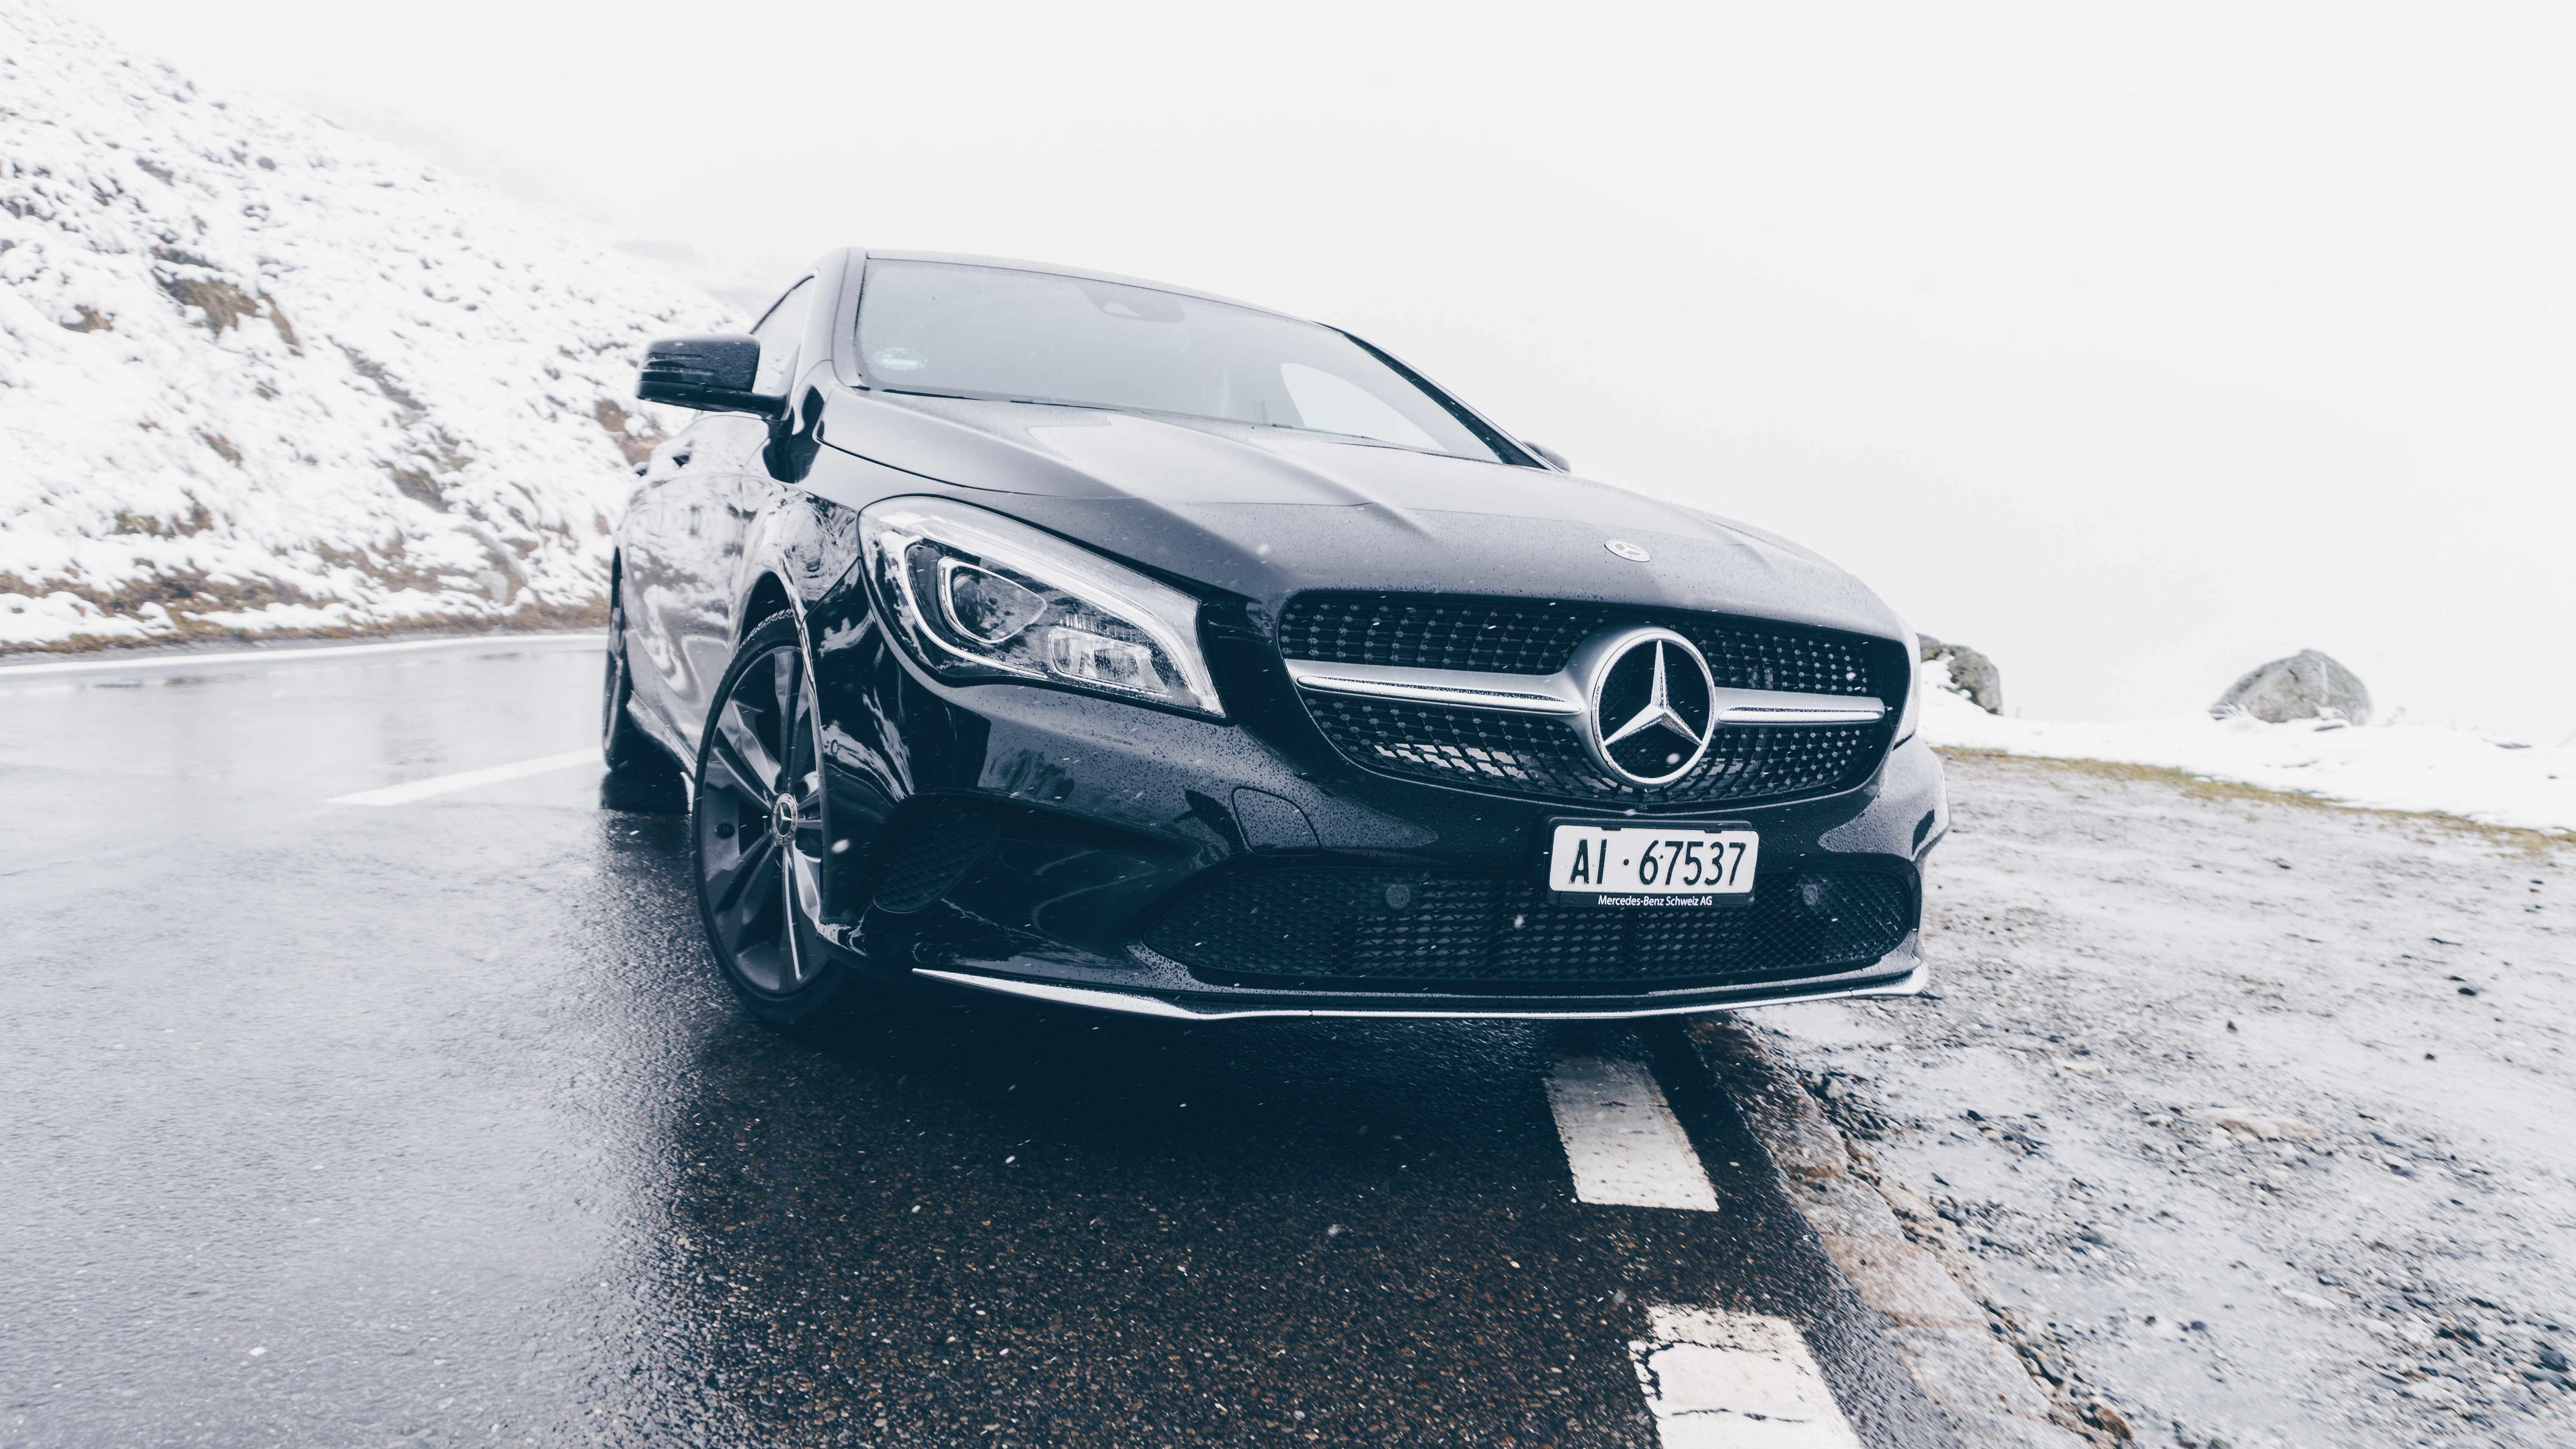 black Mercedes-Benz car on grey concrete surface